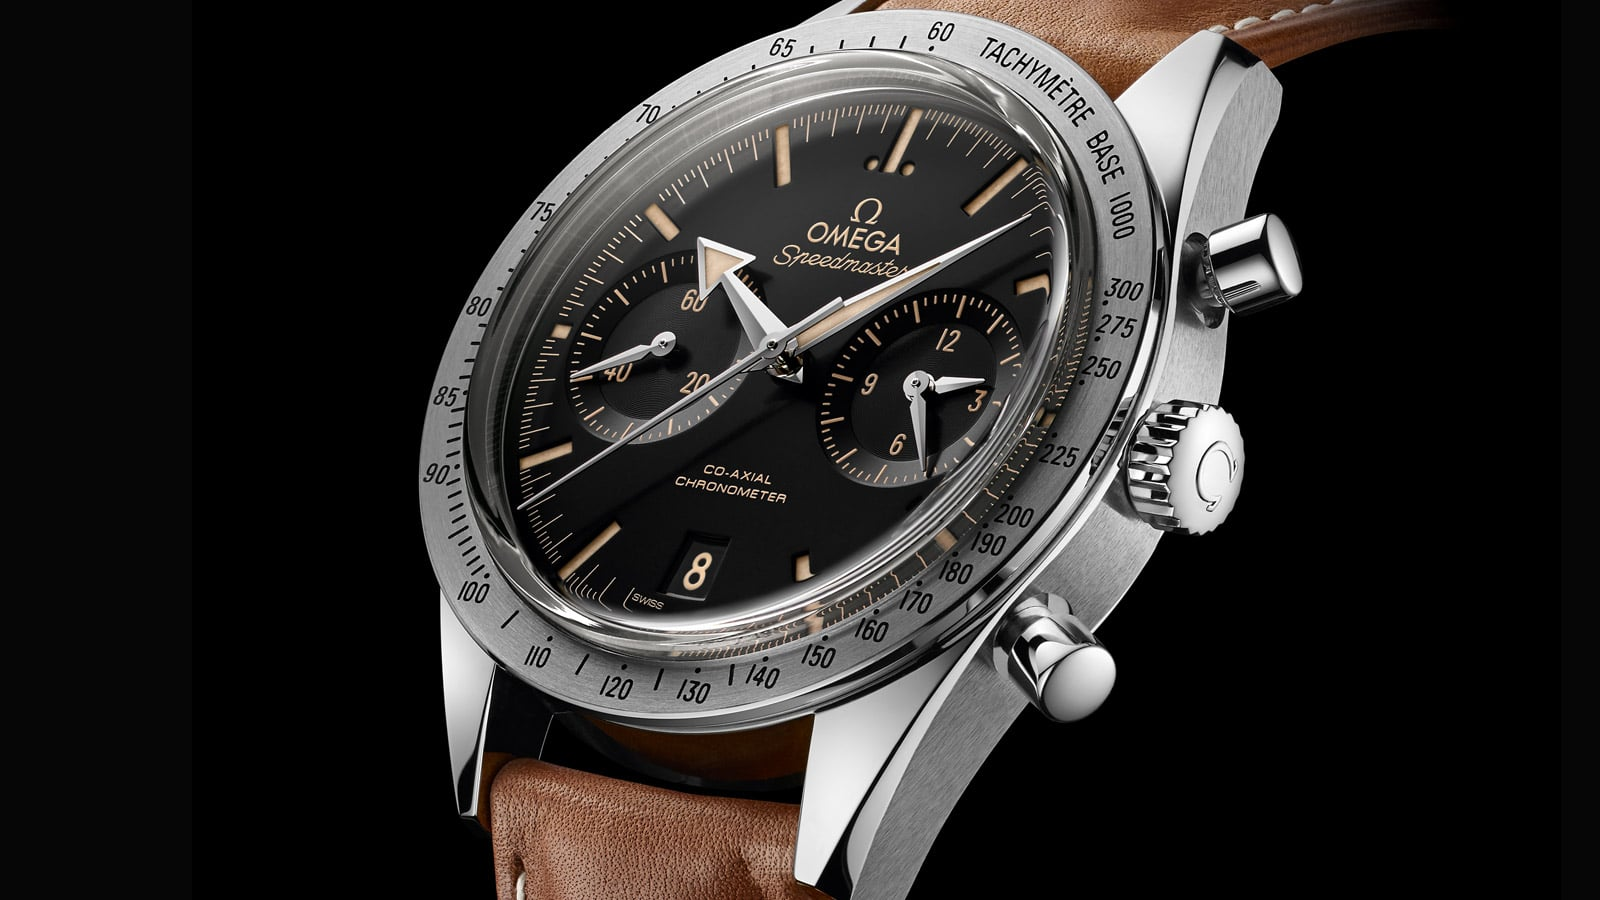 Speedmaster The Collection Watches OMEGA US 1600x900